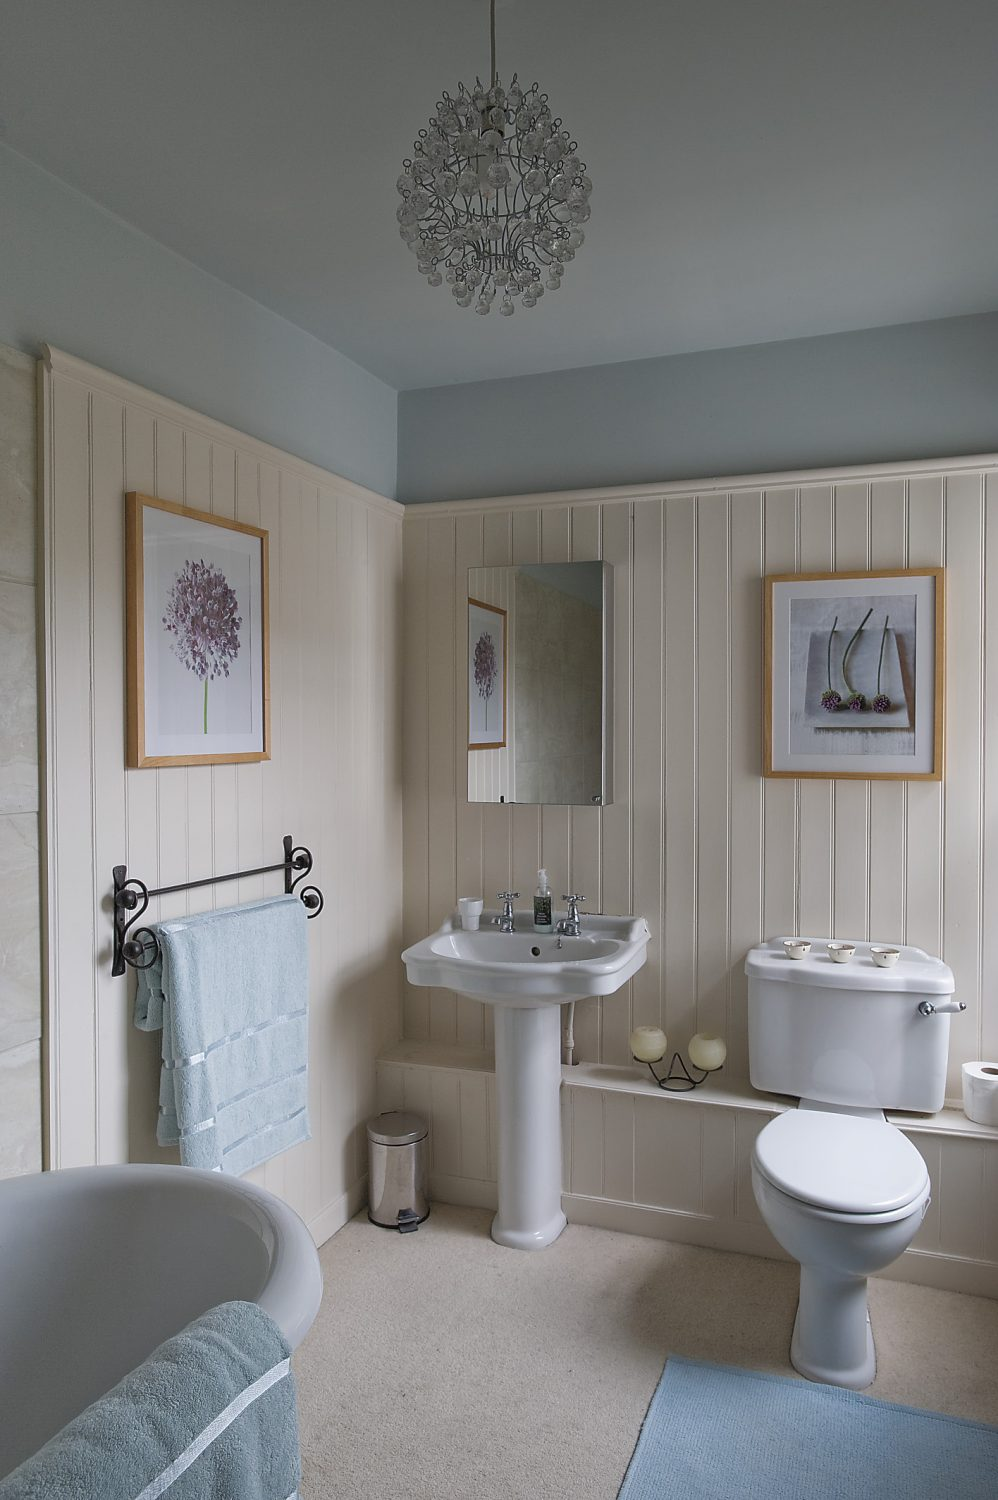 cream panelling and a roll-top bath in the bathroom